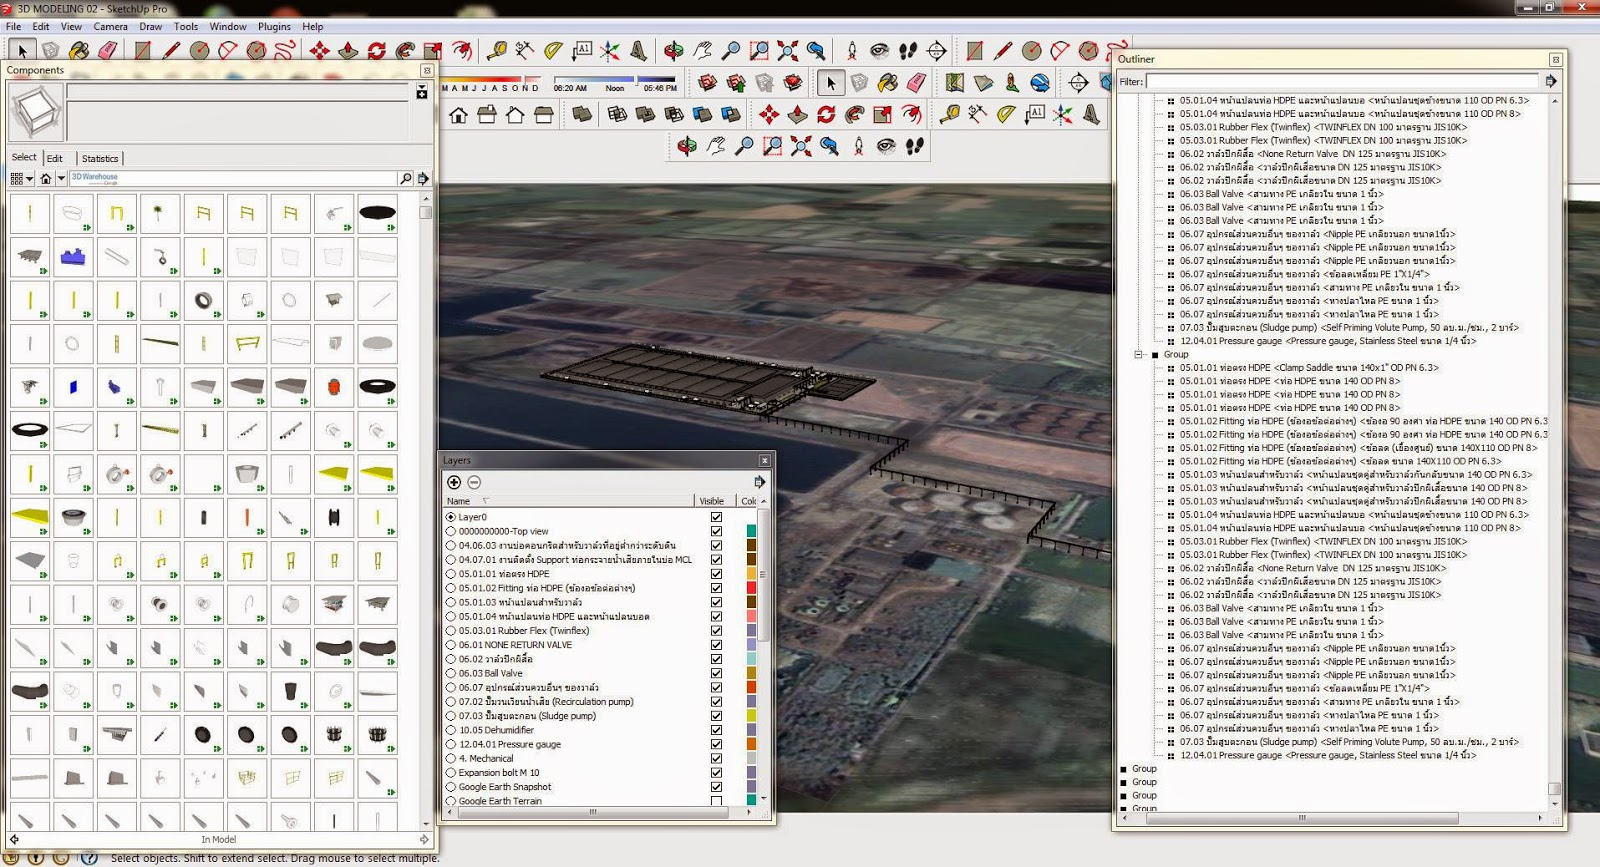 Interview with Warunyoo Songkran - an environmental engineer and Manager of Virtual Design and Construction at Premier Energy